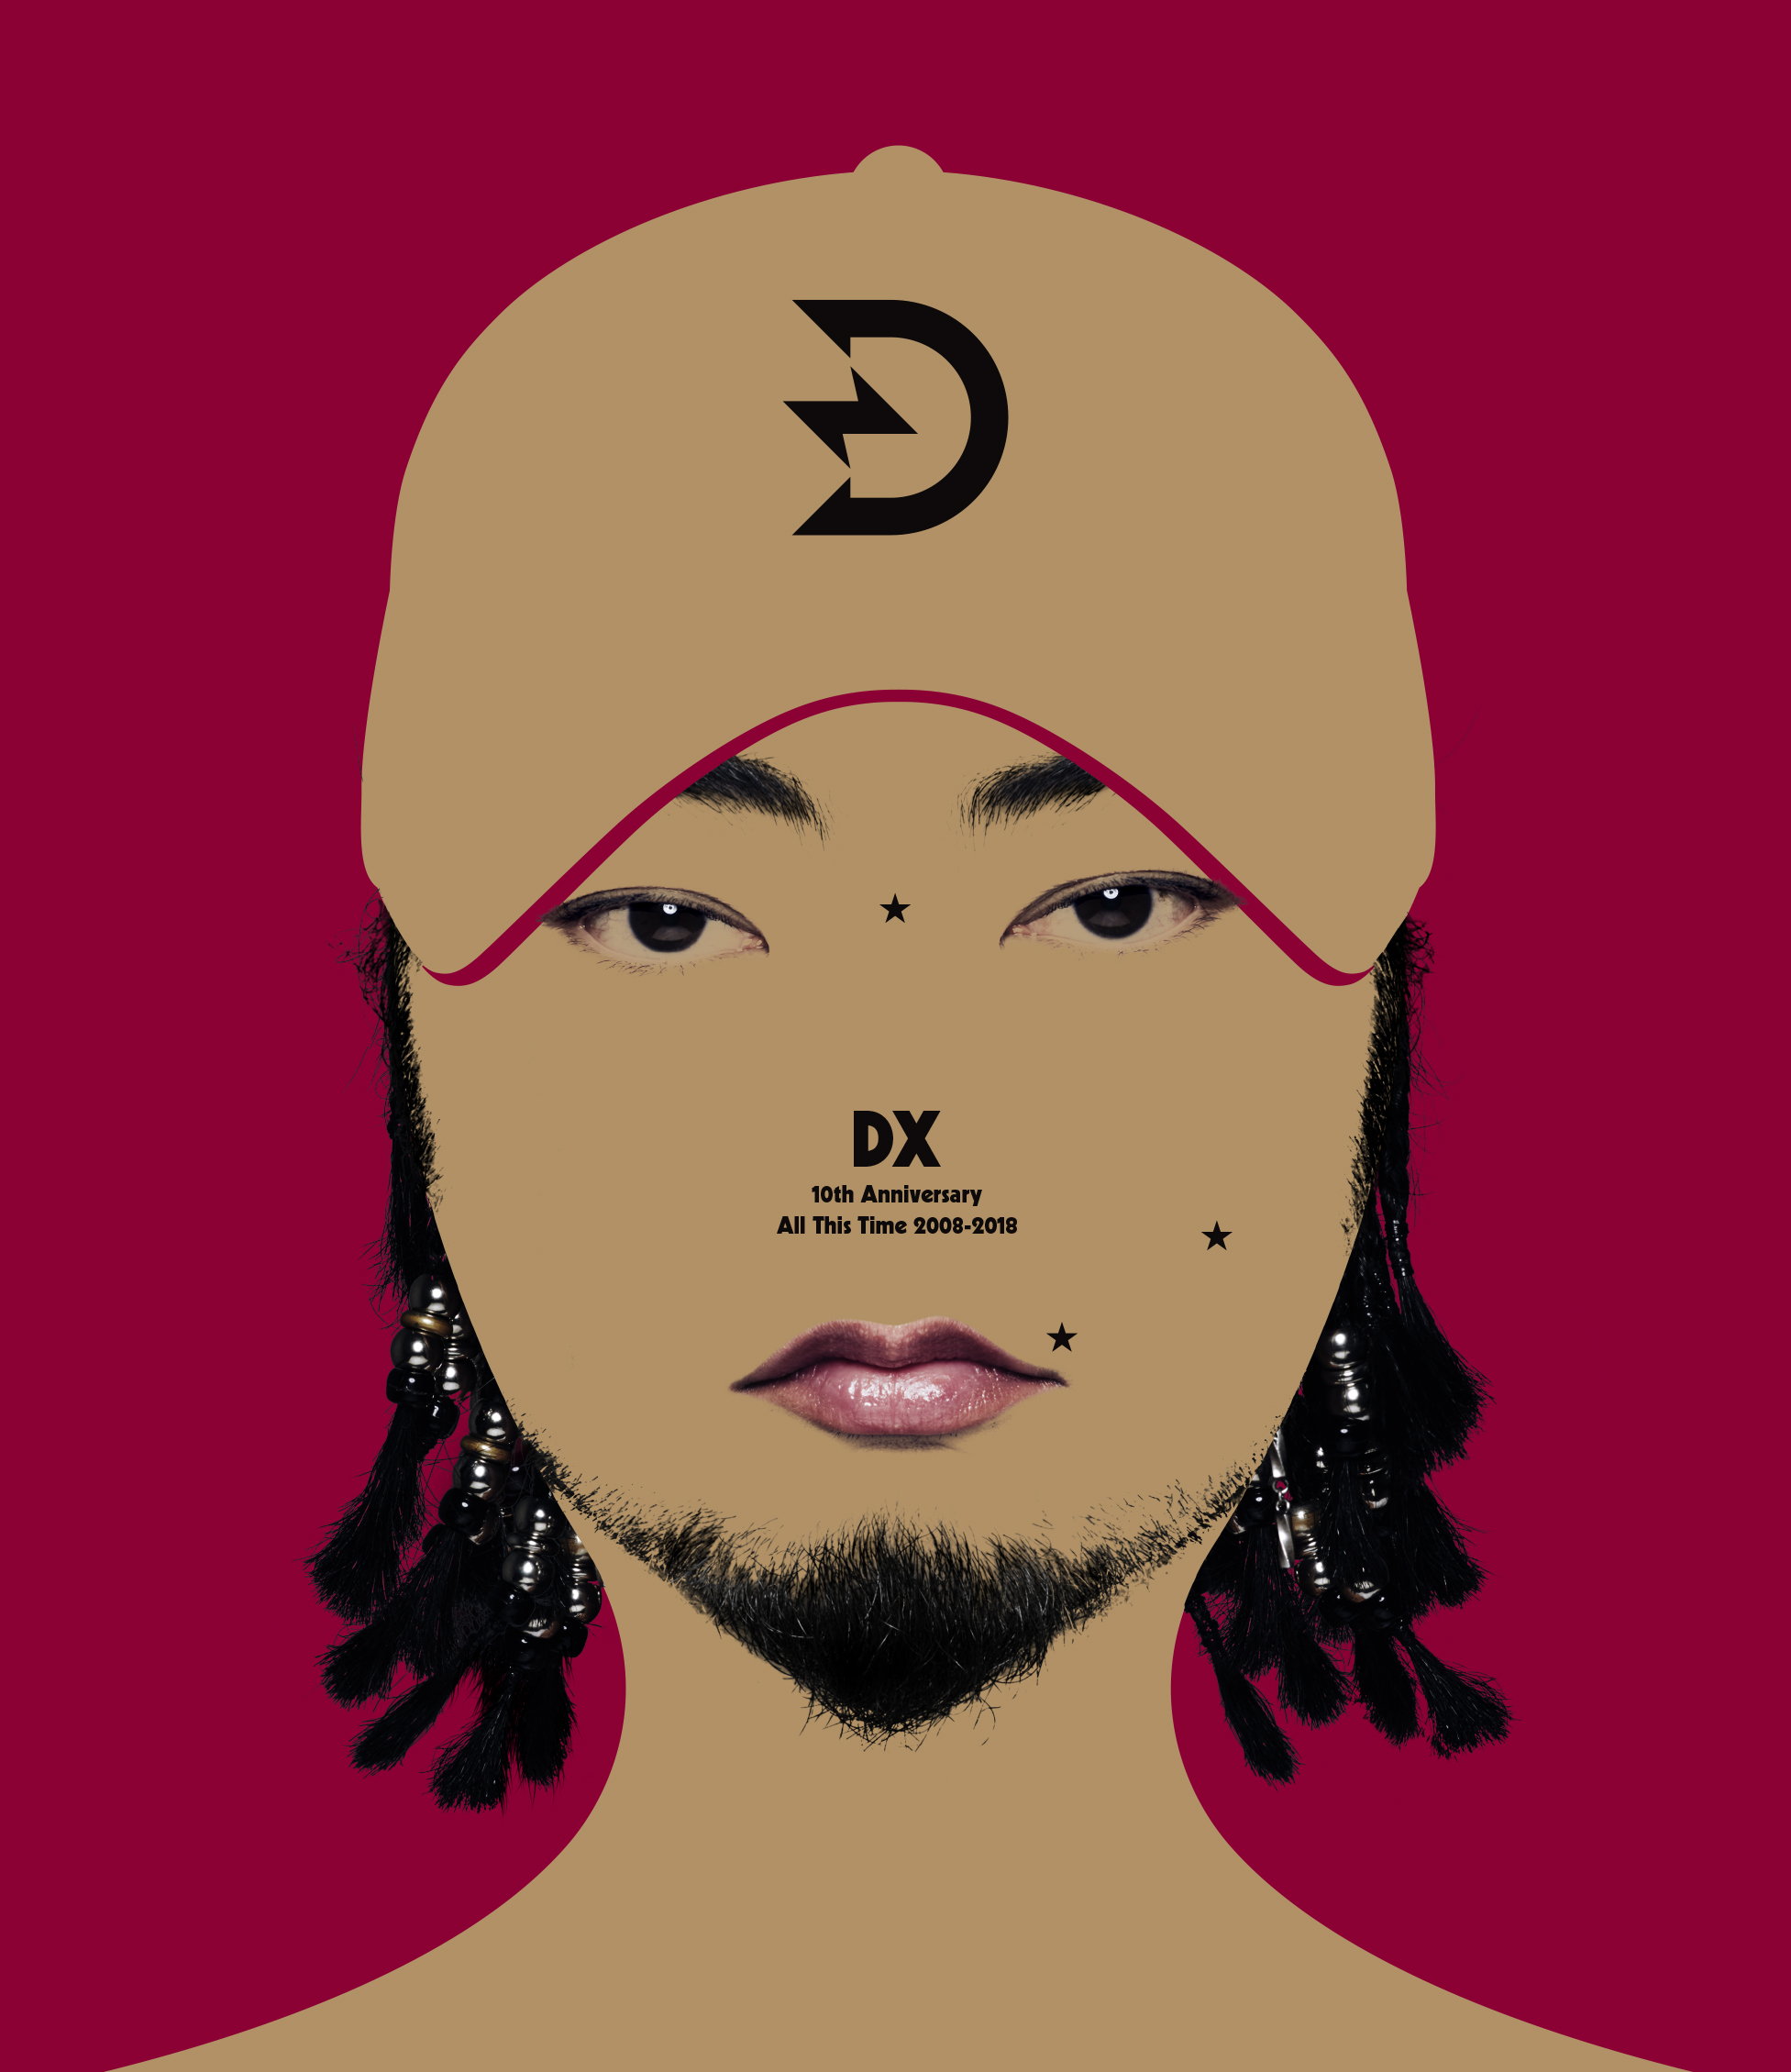 Diggy-MO'『DX - 10th Anniversary All This Time 2008-2018 -』初回盤